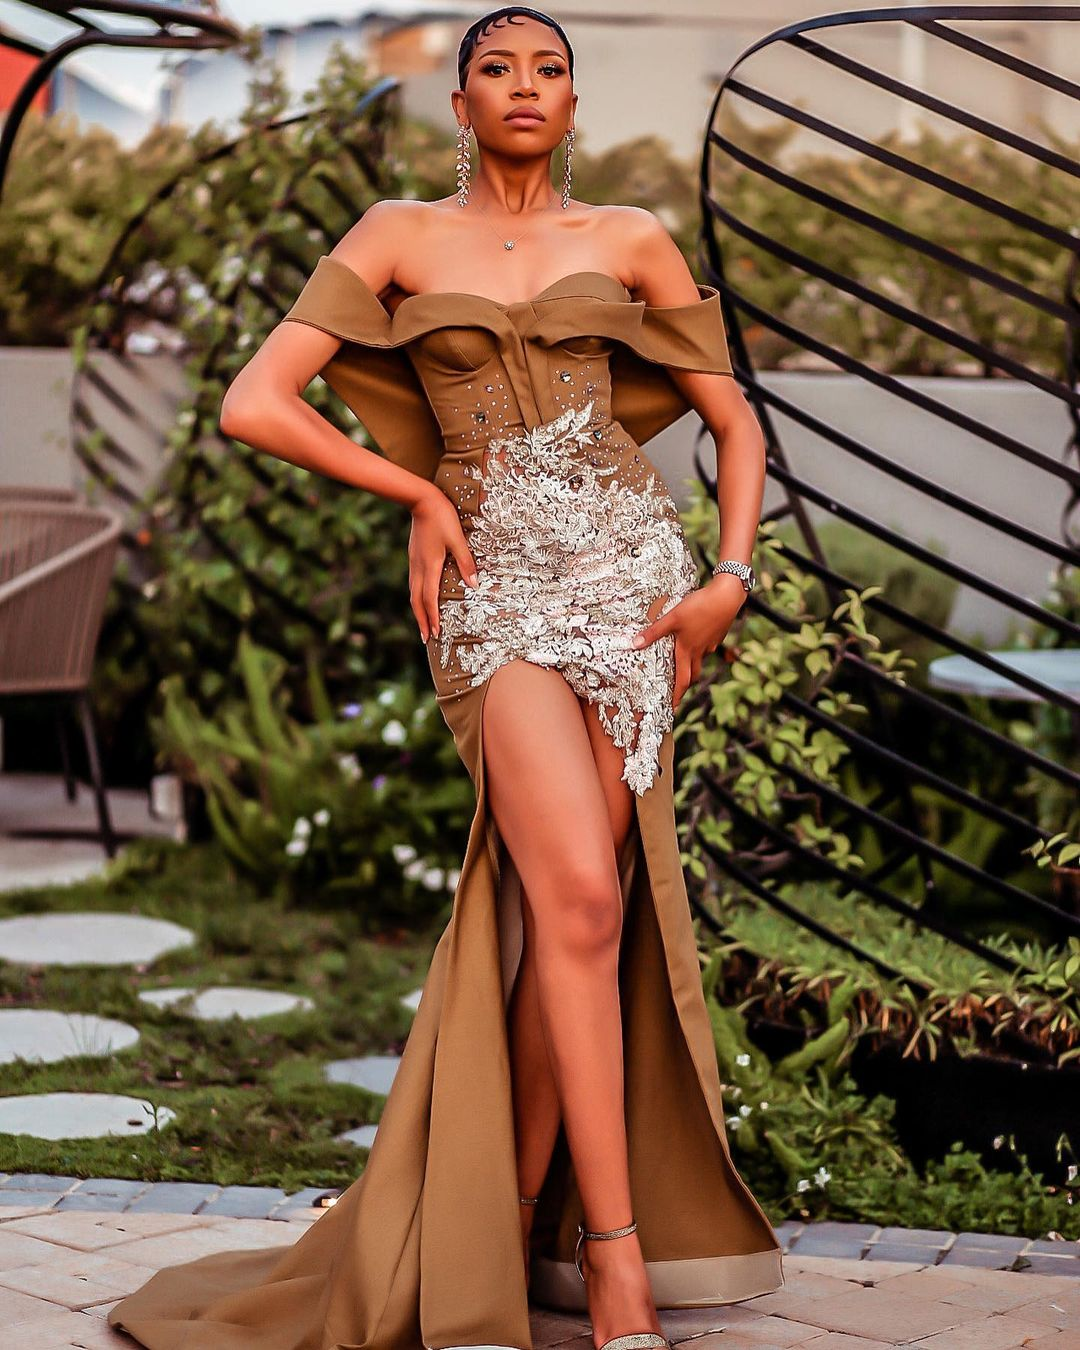 Blue Mbombo Glamourous Look Is Jaw Dropping